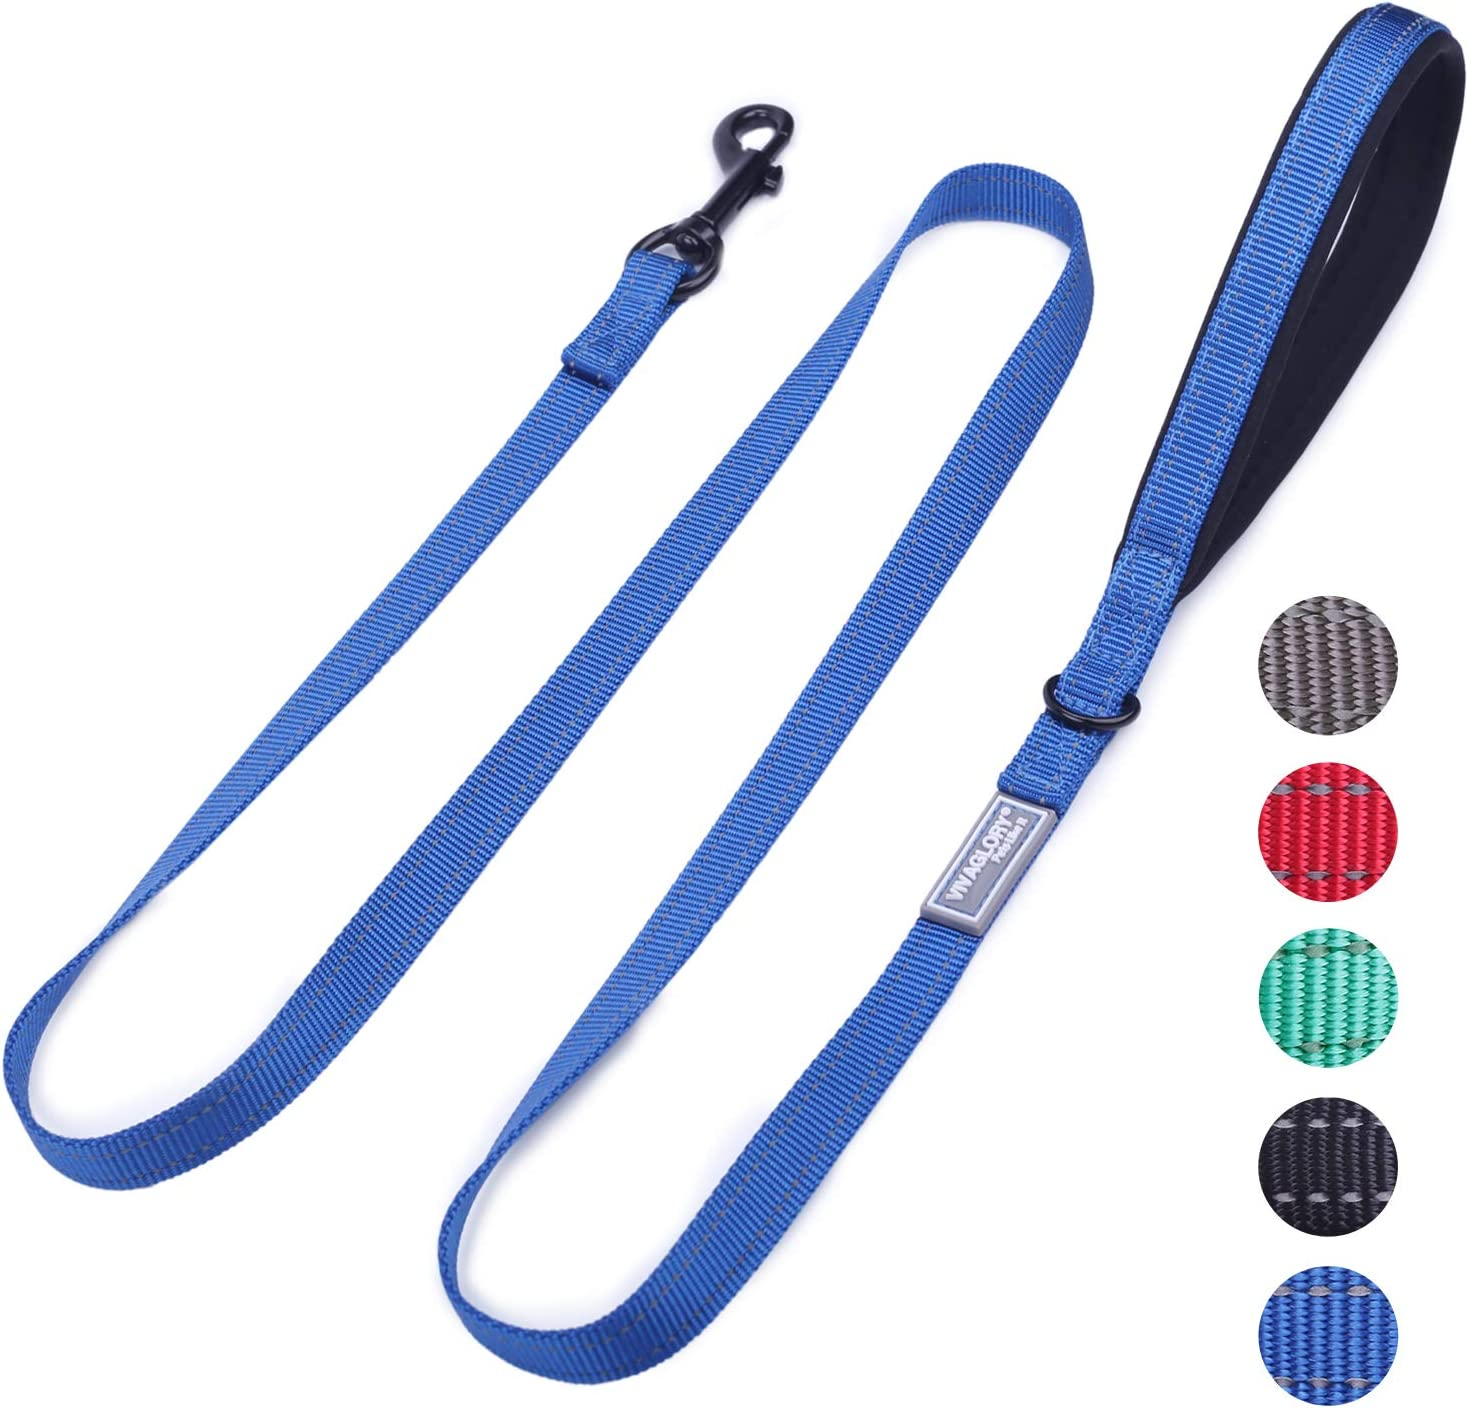 VIVAGLORY Dog Training Lead with Padded Handle Blue Heavy Duty 6ft Long Reflective Nylon Walking Leash for Medium to Large Dogs